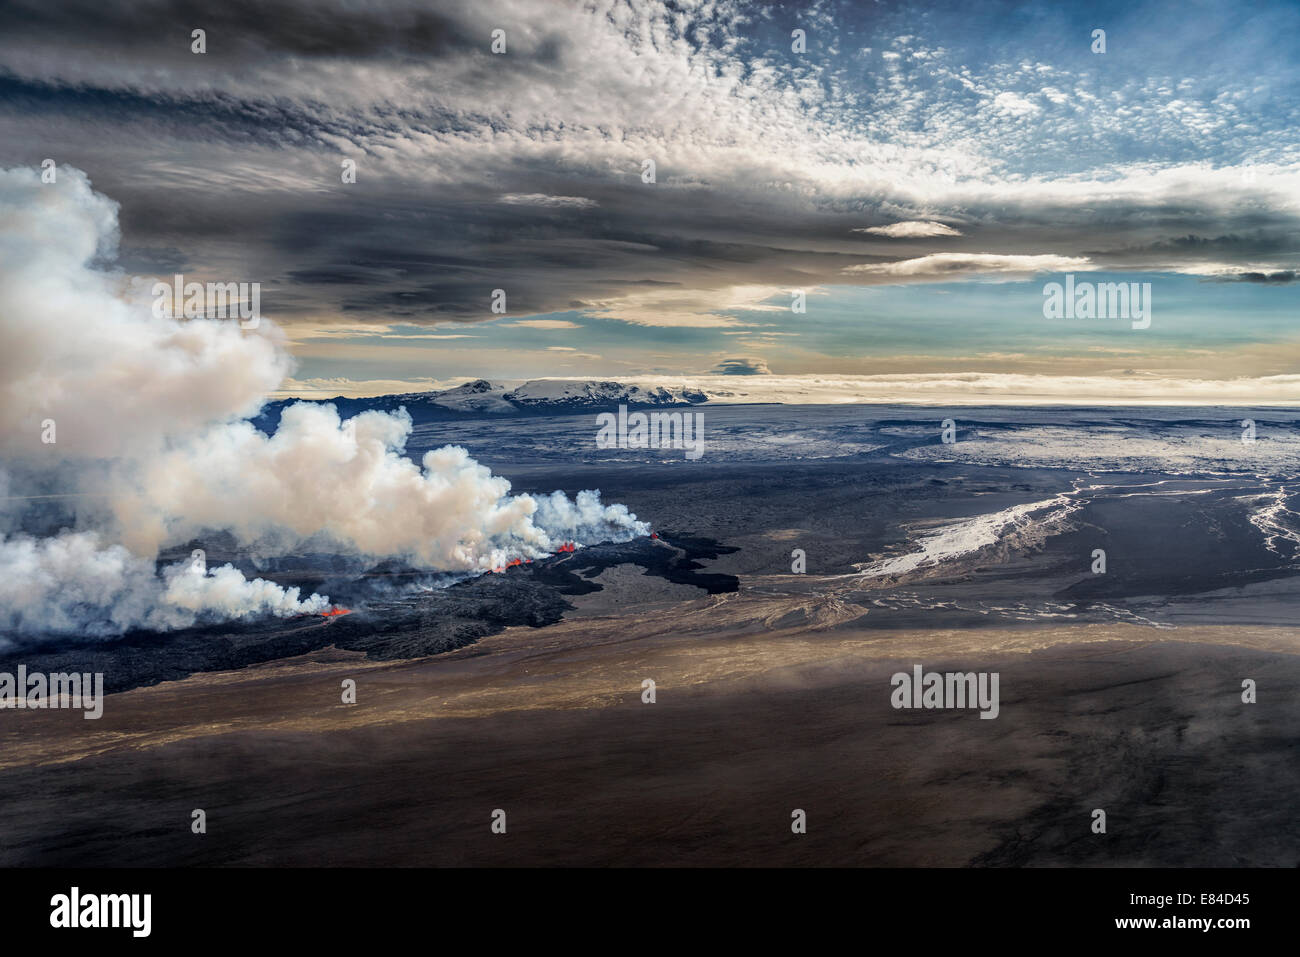 Lava and plumes from the Holuhraun Fissure Eruption by the Bardarbunga Volcano, Iceland.  Aerial view of the eruption - Stock Image